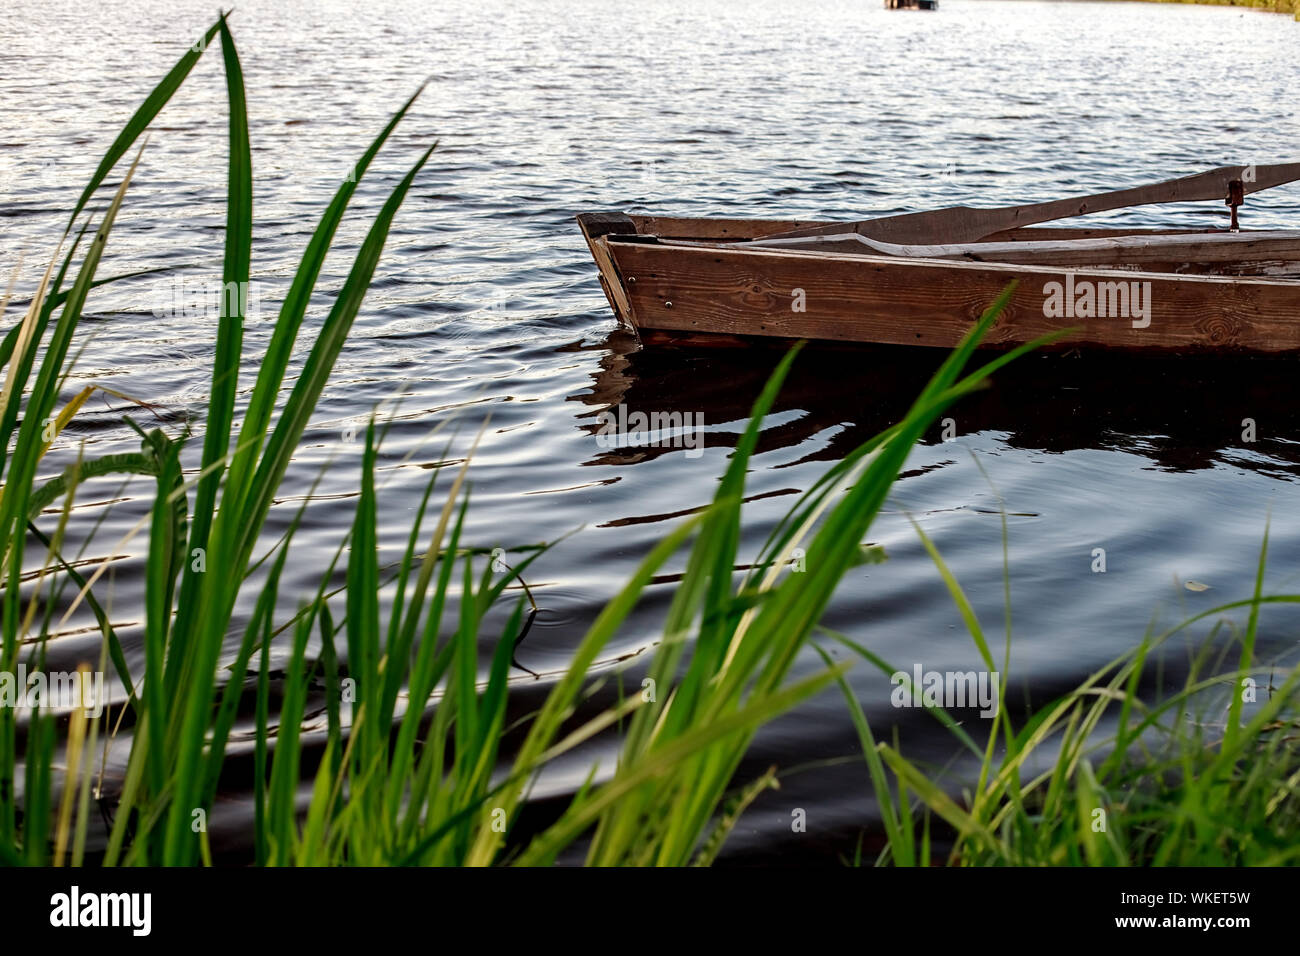 A small wooden rowing boat with a broken bottom on a calm lake near the shore. Belarus Stock Photo